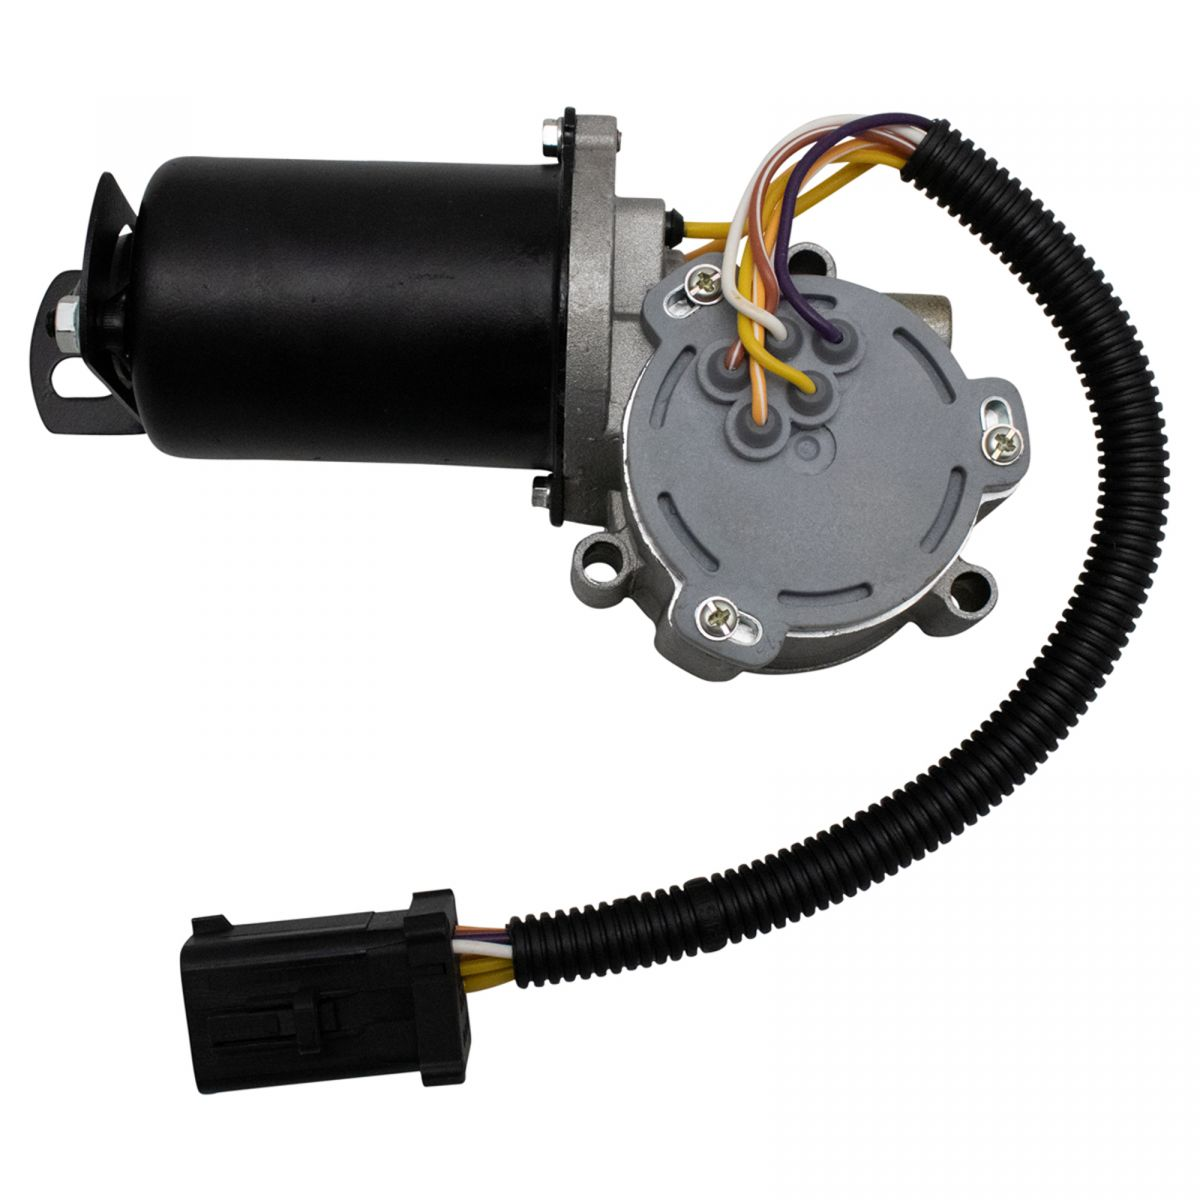 Dorman transfer case shift motor actuator for ford f150 pickup truck 4wd 4x4